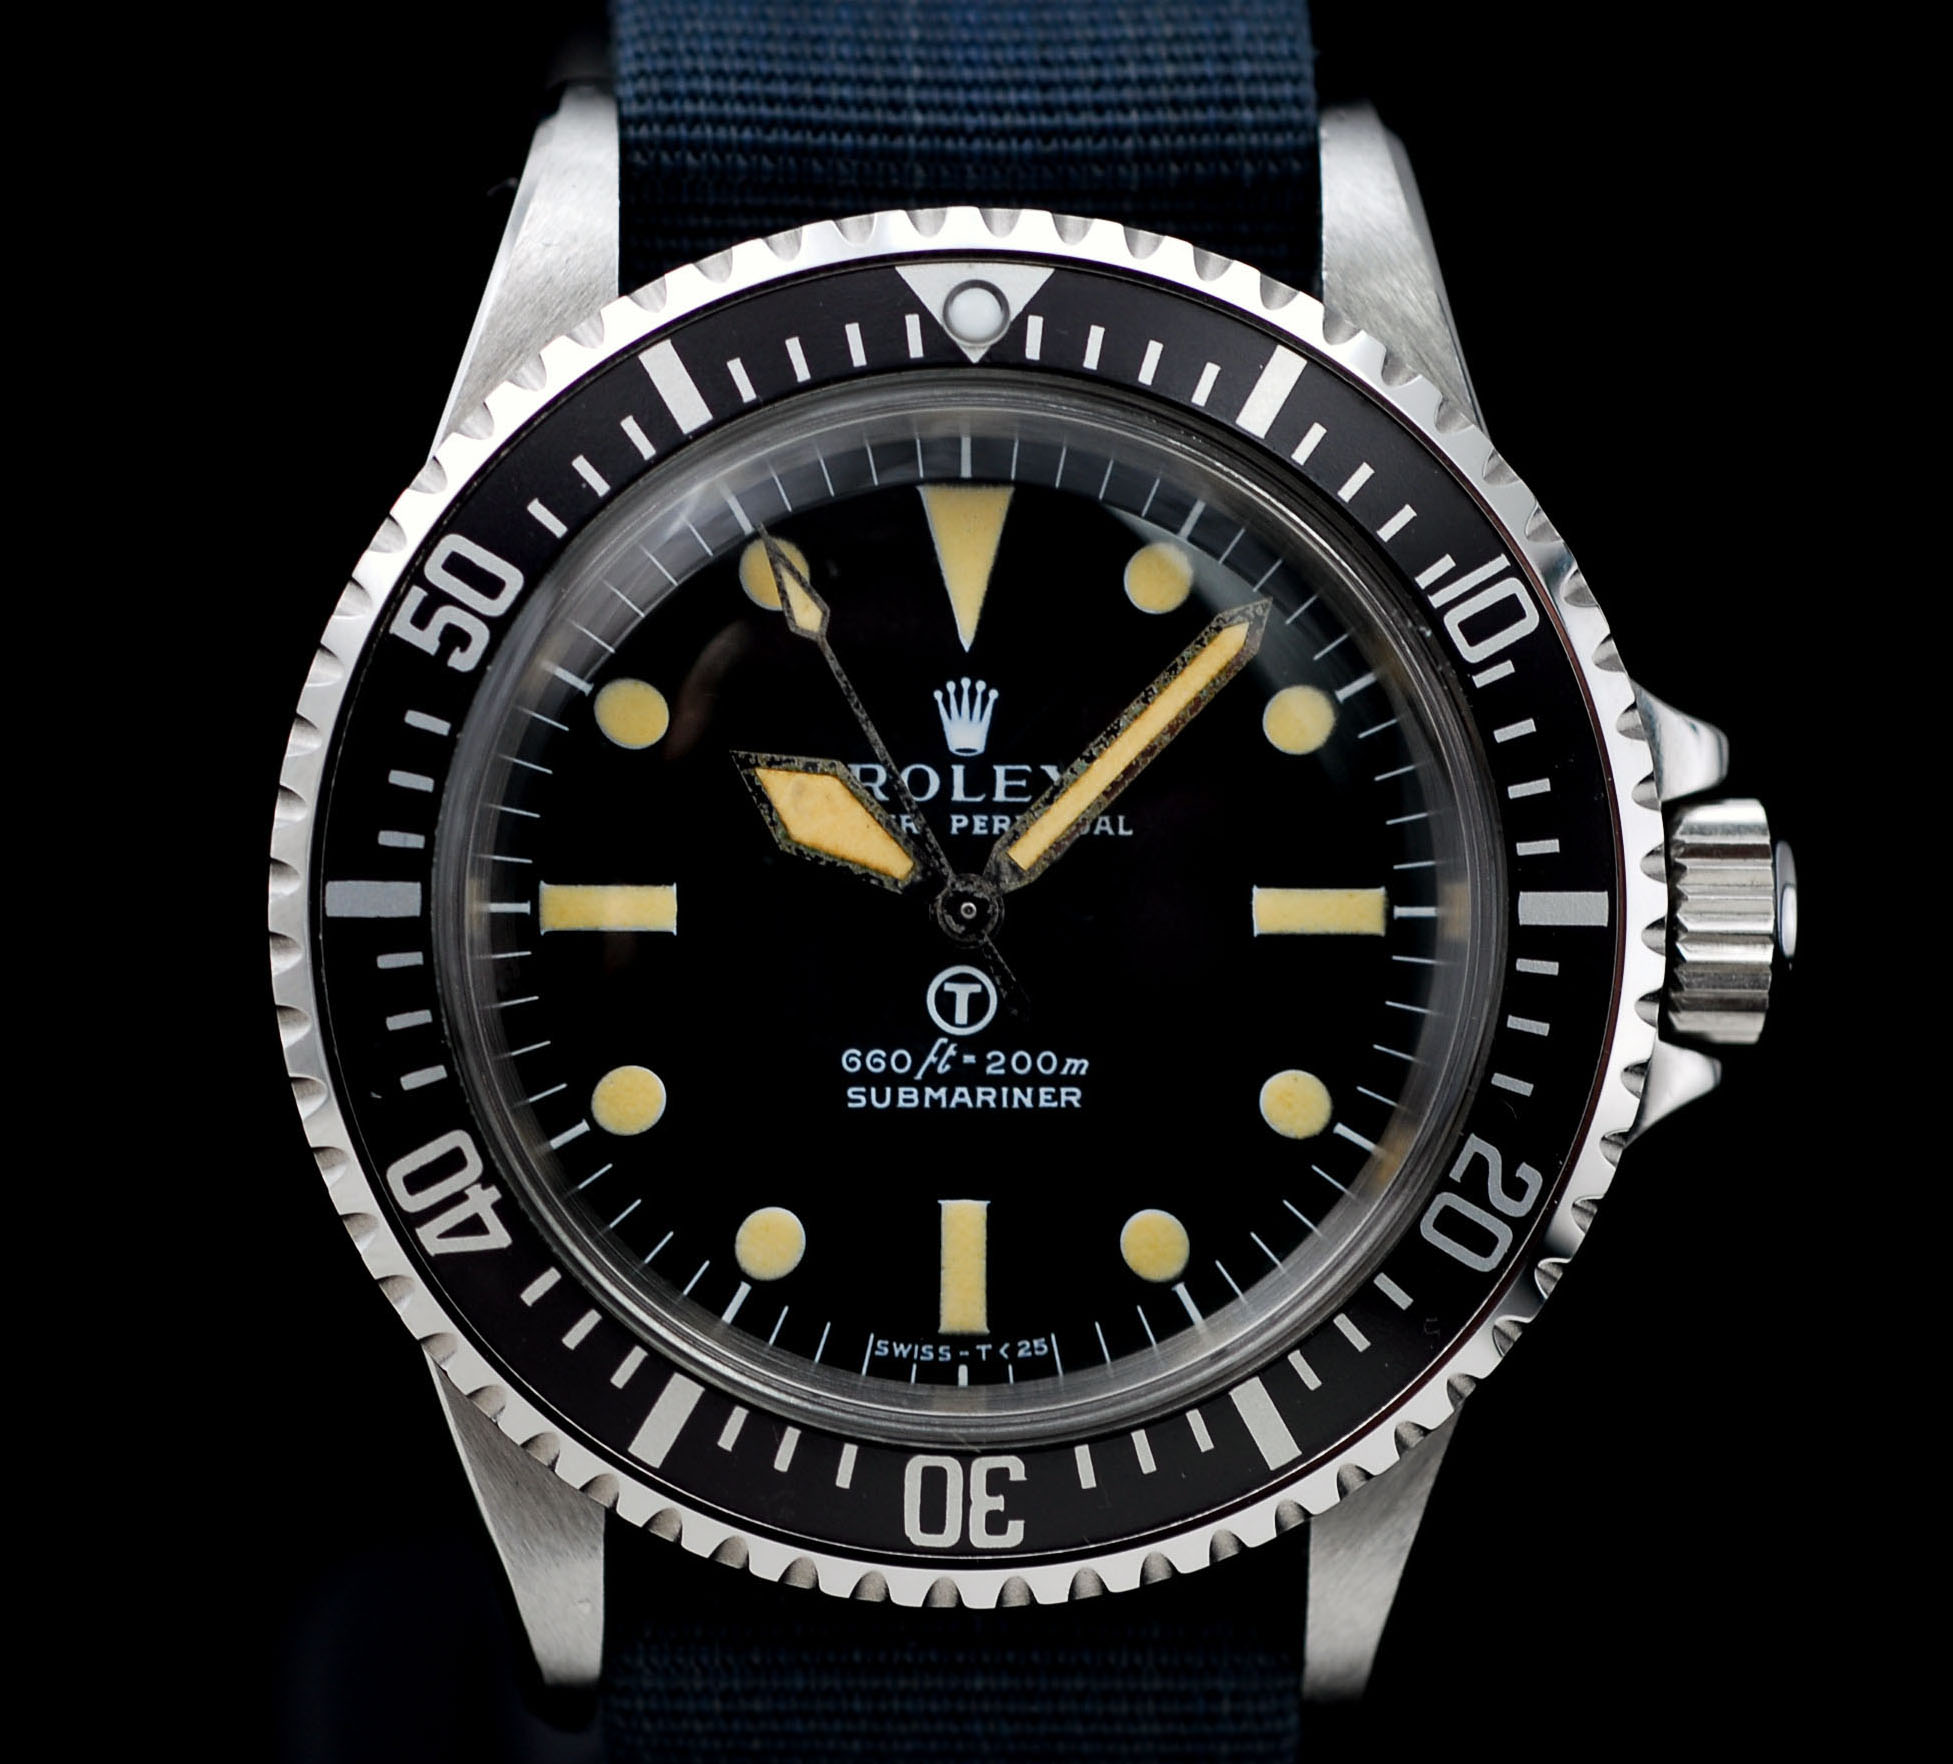 Vintage Rolex 5513 Milsub Submariner Love - Article at Bulang and Sons